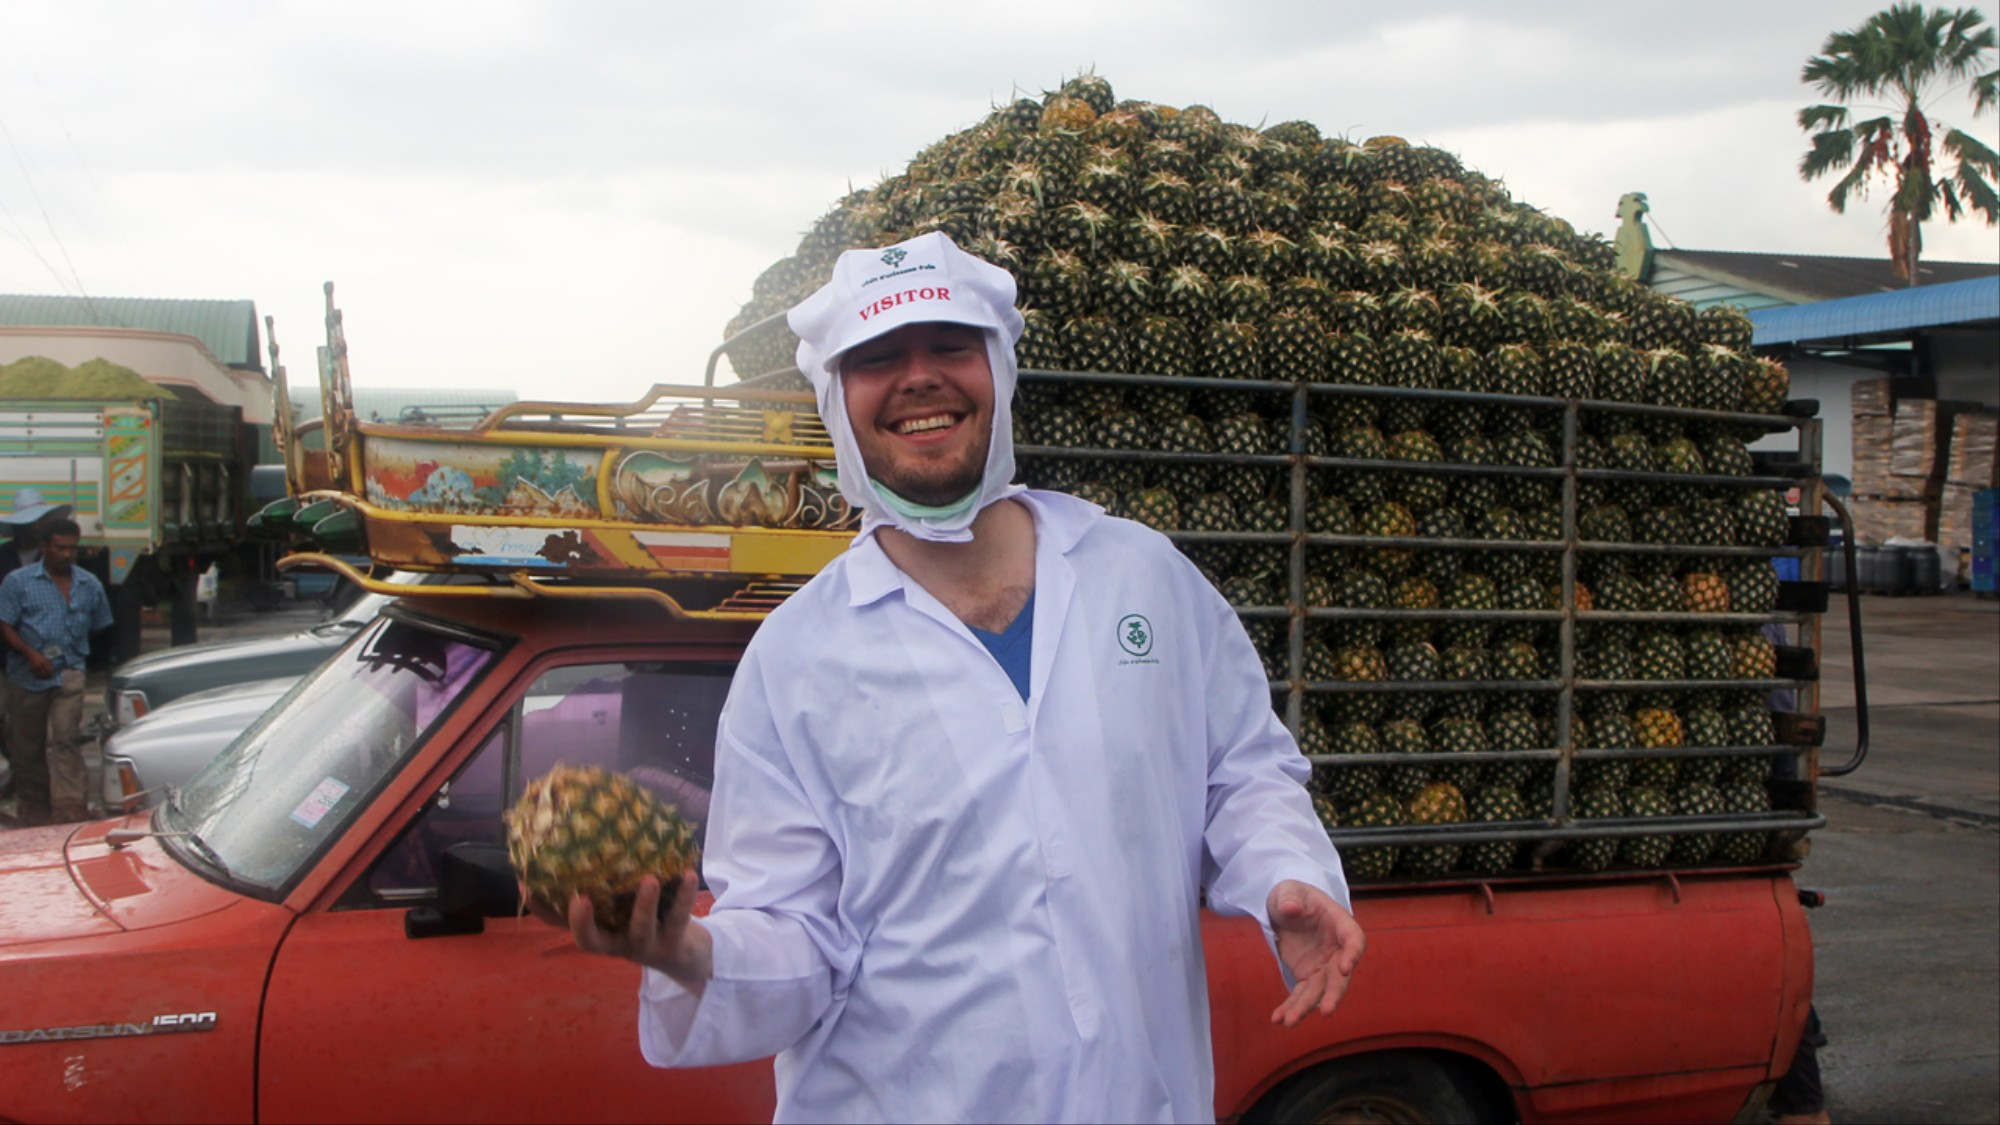 Meet the Netherlands' Biggest Pineapple Obsessive - VICE